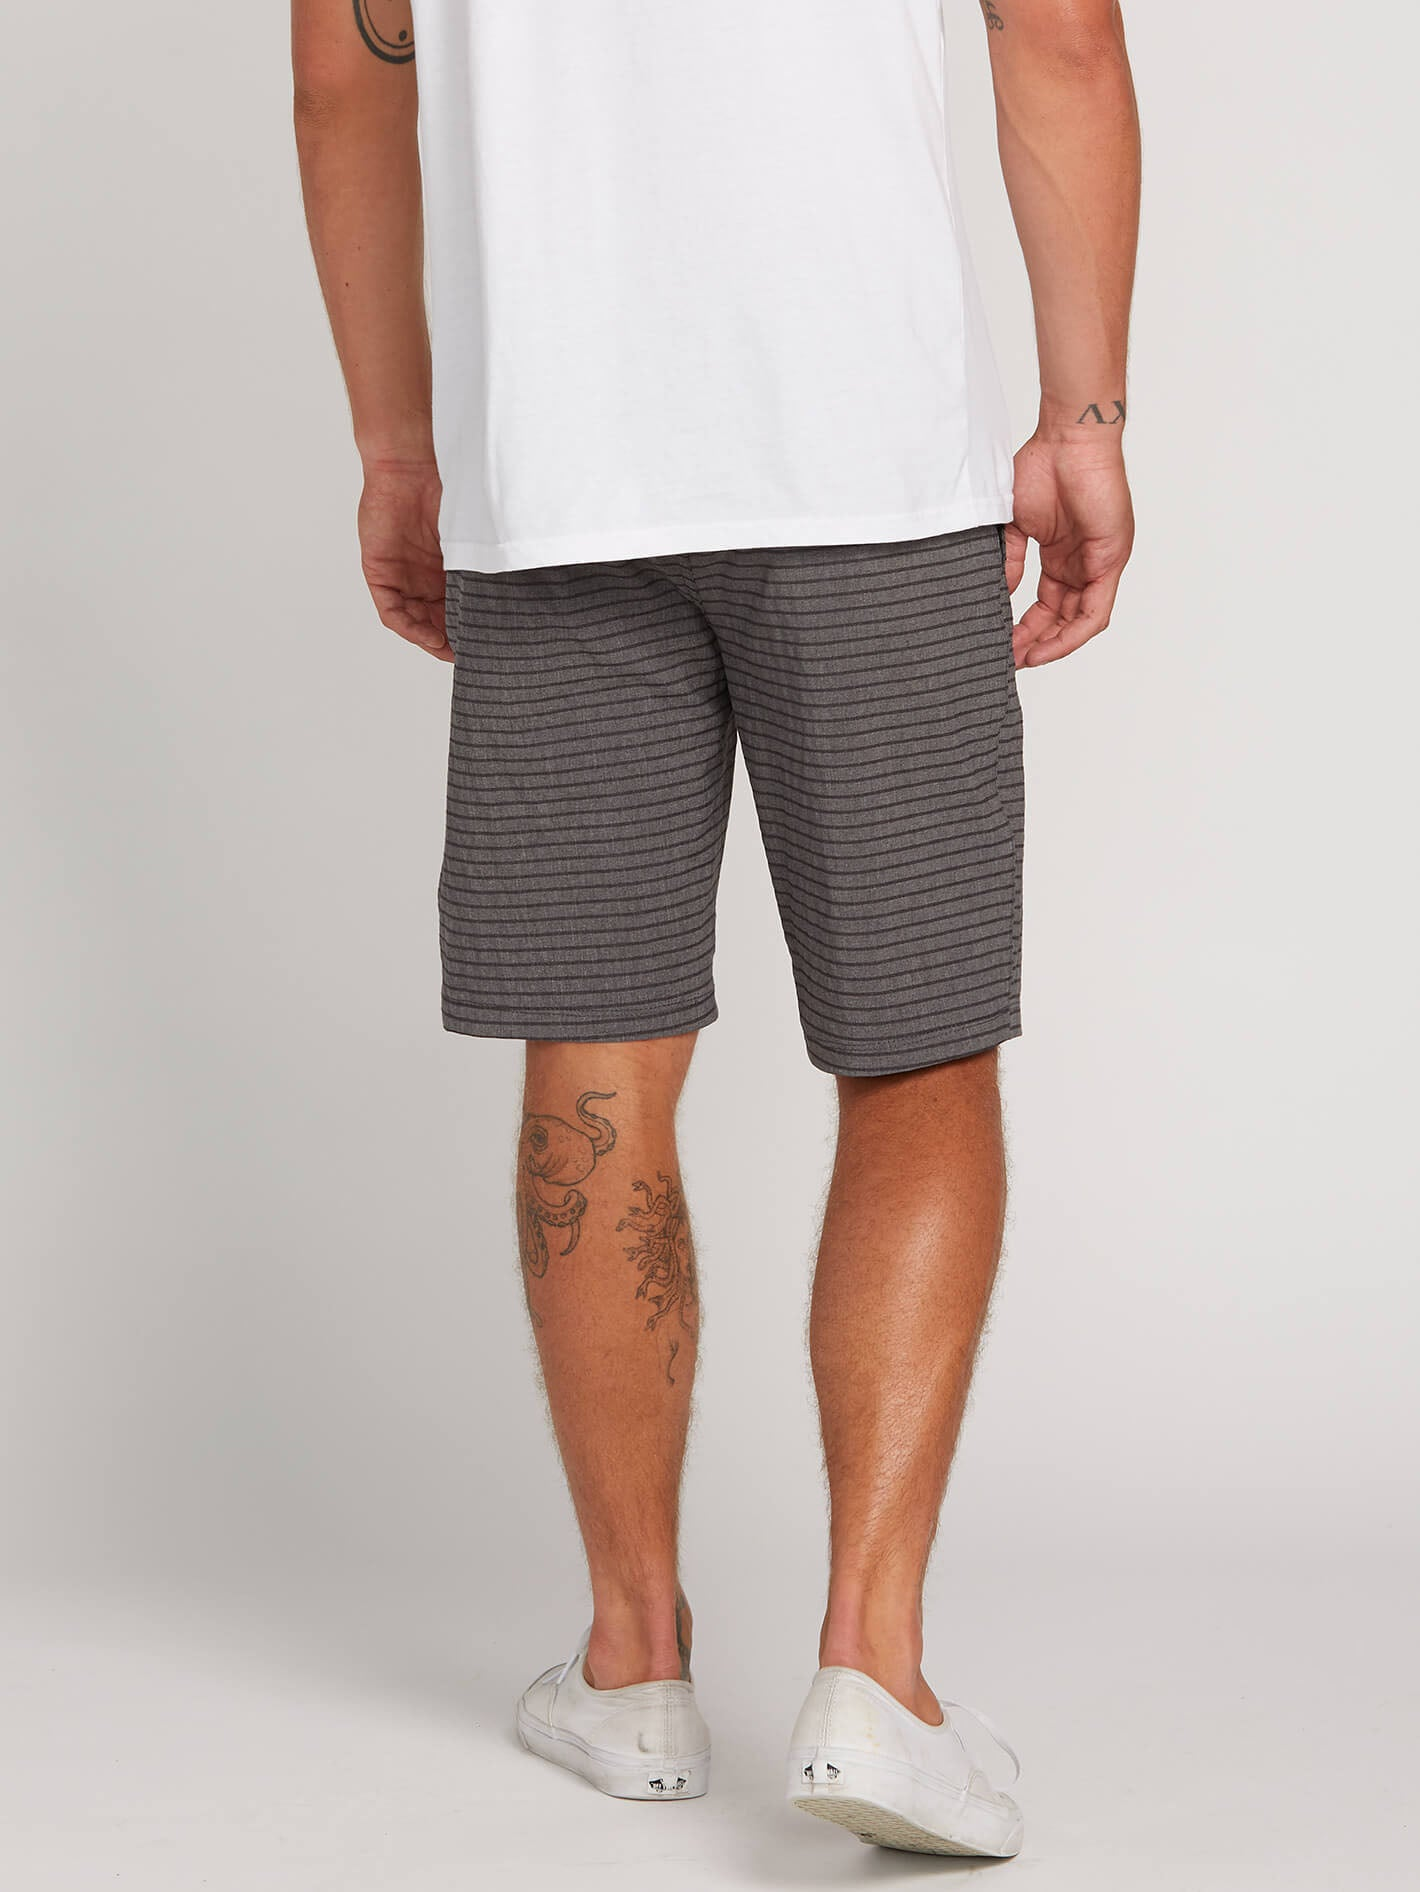 0356731e6 Frickin Surf N  Turf Mix Hybrid Shorts - Charcoal in CHARCOAL - Alternative  View